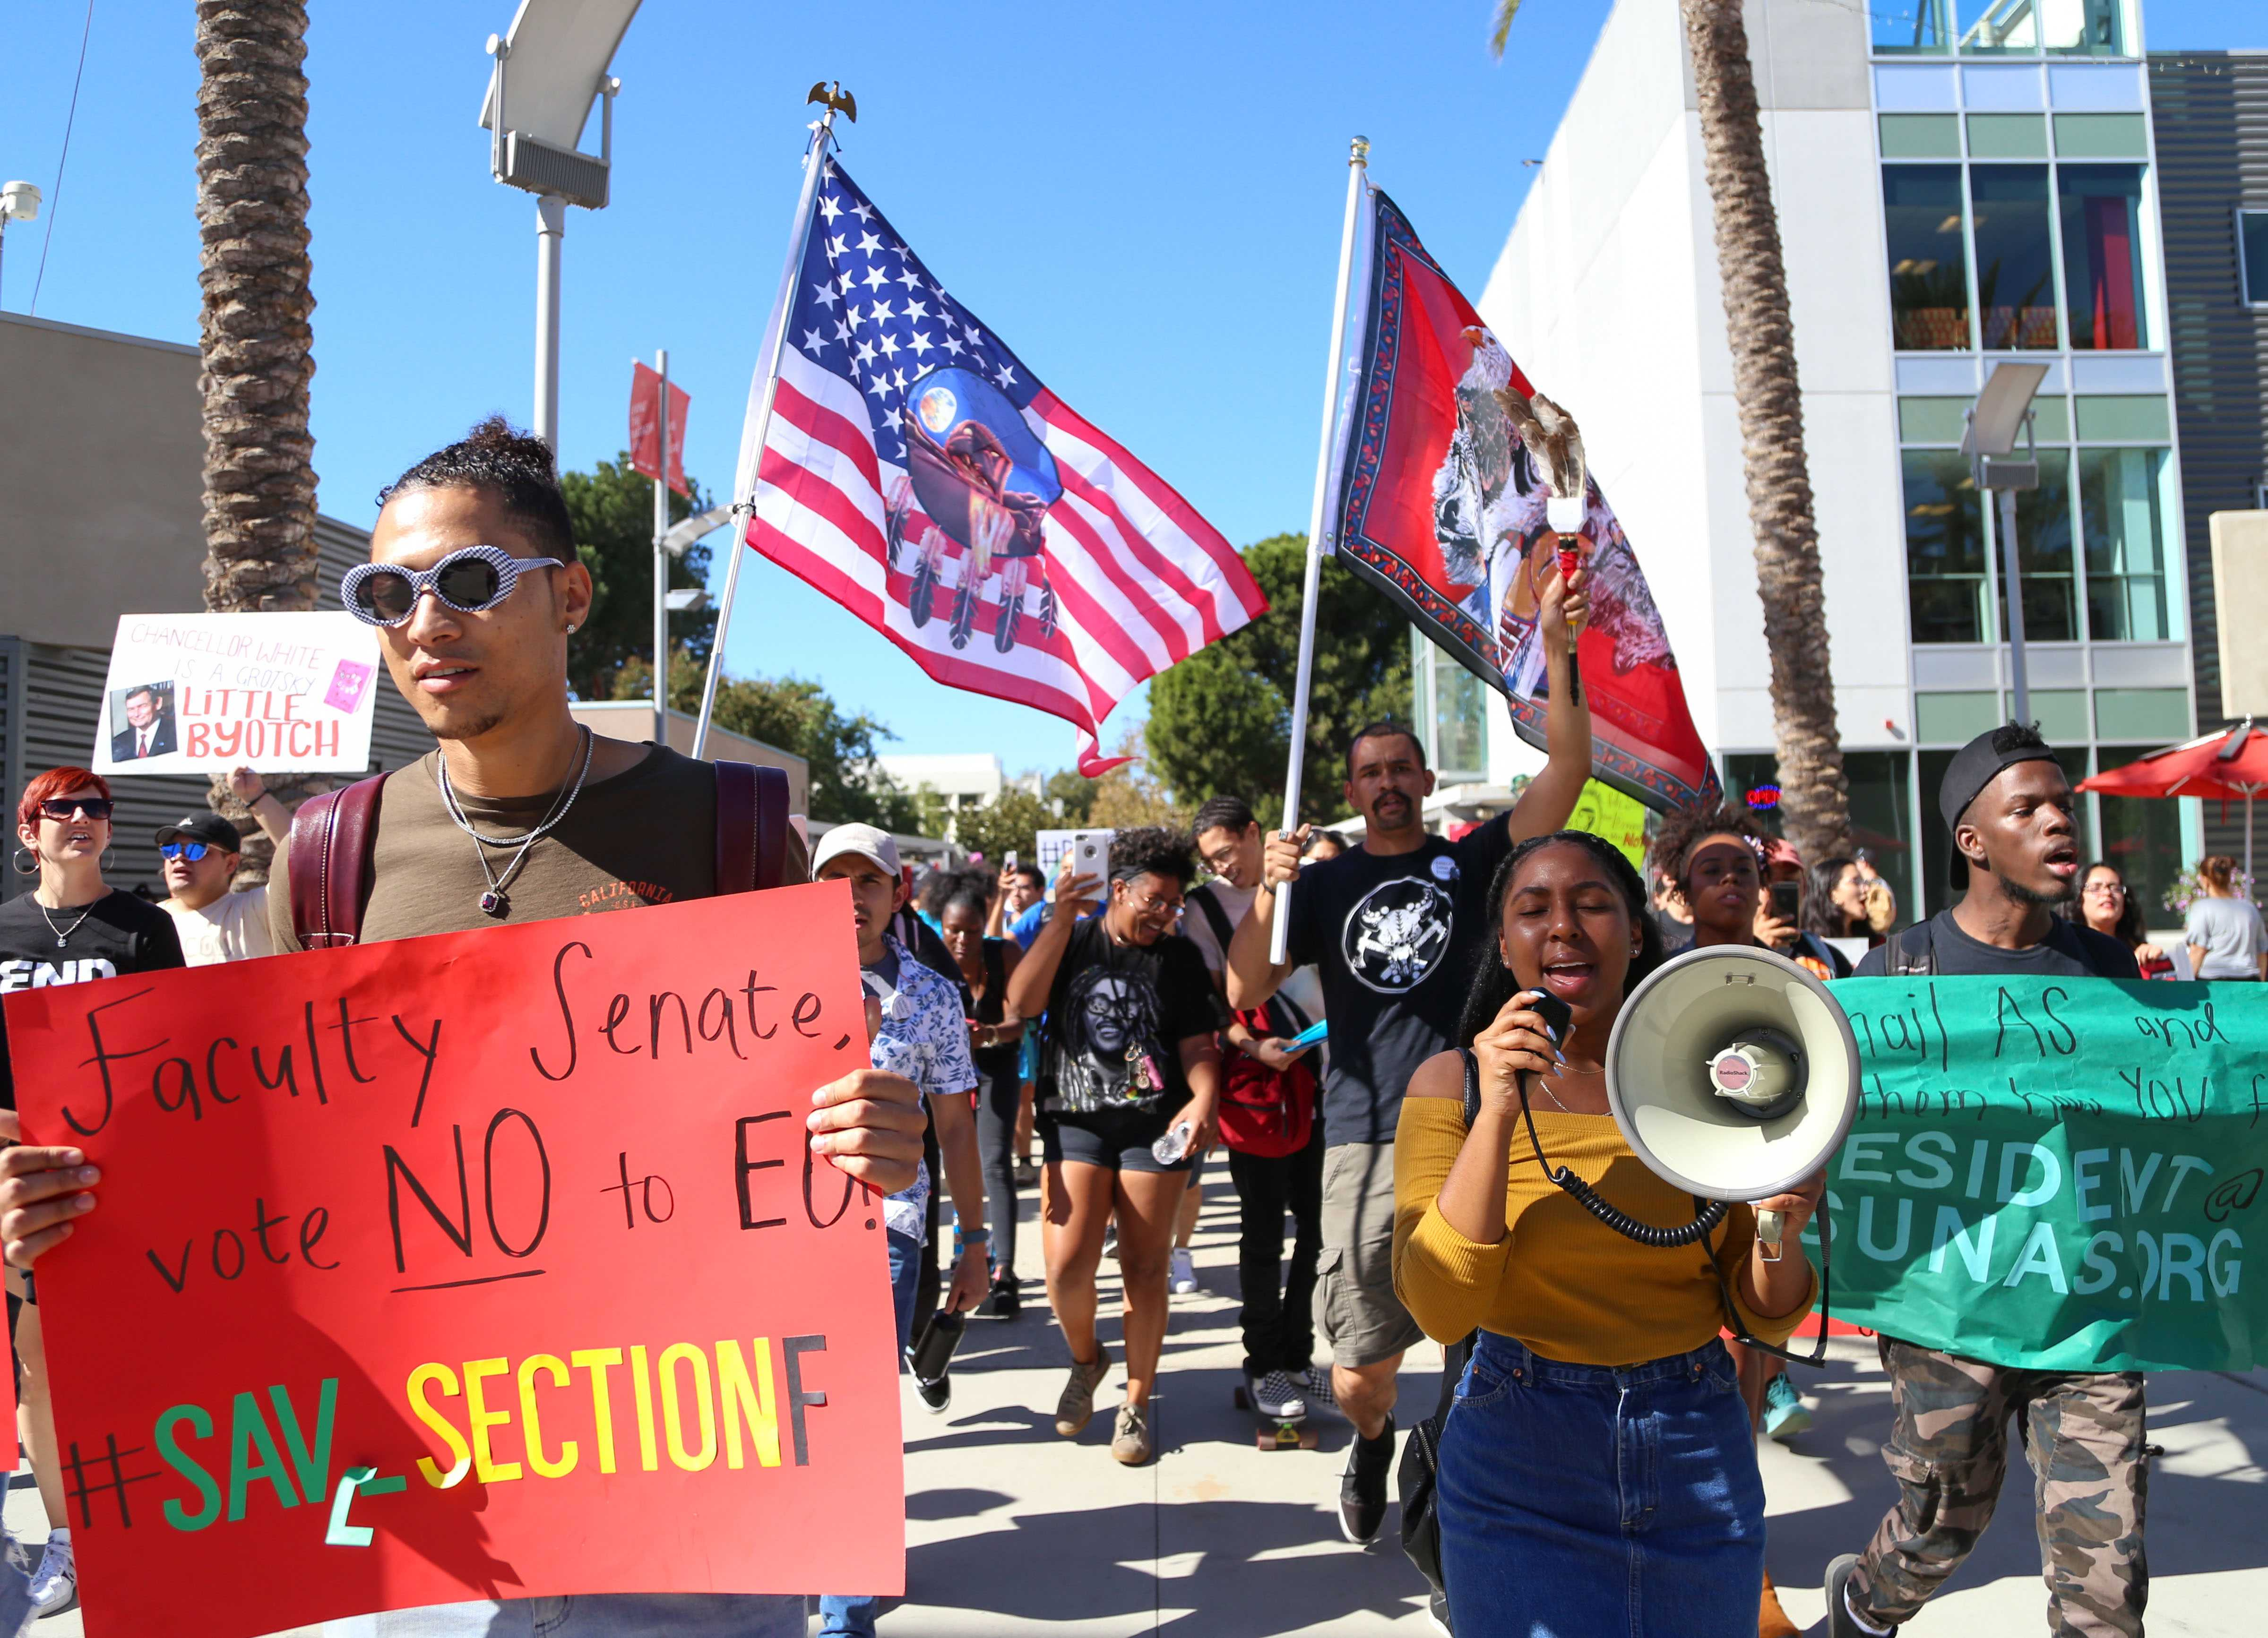 CSUN politcal science pre-law major, and Vice President of the Black Student Union, Isaiah Thibodeaux (left) holds up a sign as he marches to protect school Section F from Executive Order 1100 at the University Student Union in Northridge Calif., Wednesday, Oct. 25, 2017. Photo credit: John Hernandez